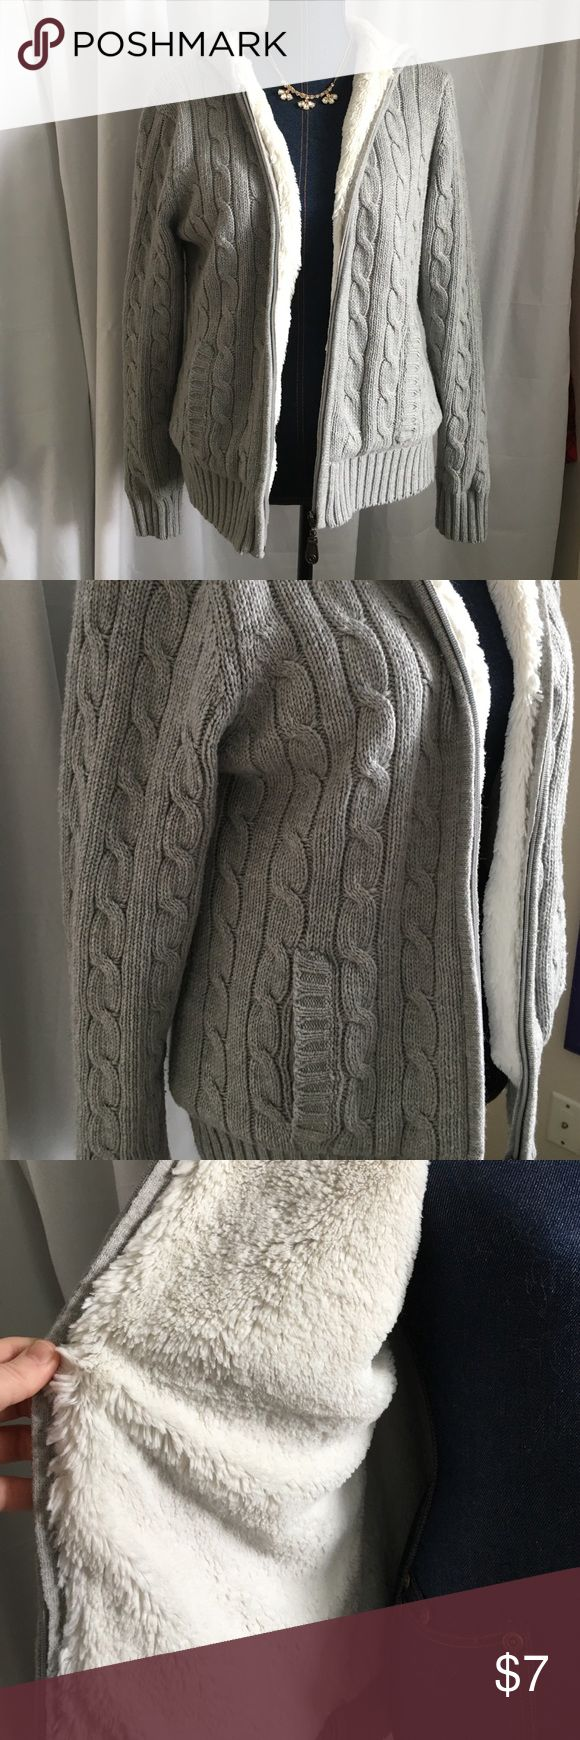 Fuzzy Lined Full Zip Cable Knit Jacket Good condition pre-loved sweater jacket by green tea brand. Has pilling but in good condition- price reflects this! No stains, pulls or tears. Non-smoking home. Measures: 21x25 green tea Jackets & Coats Puffers